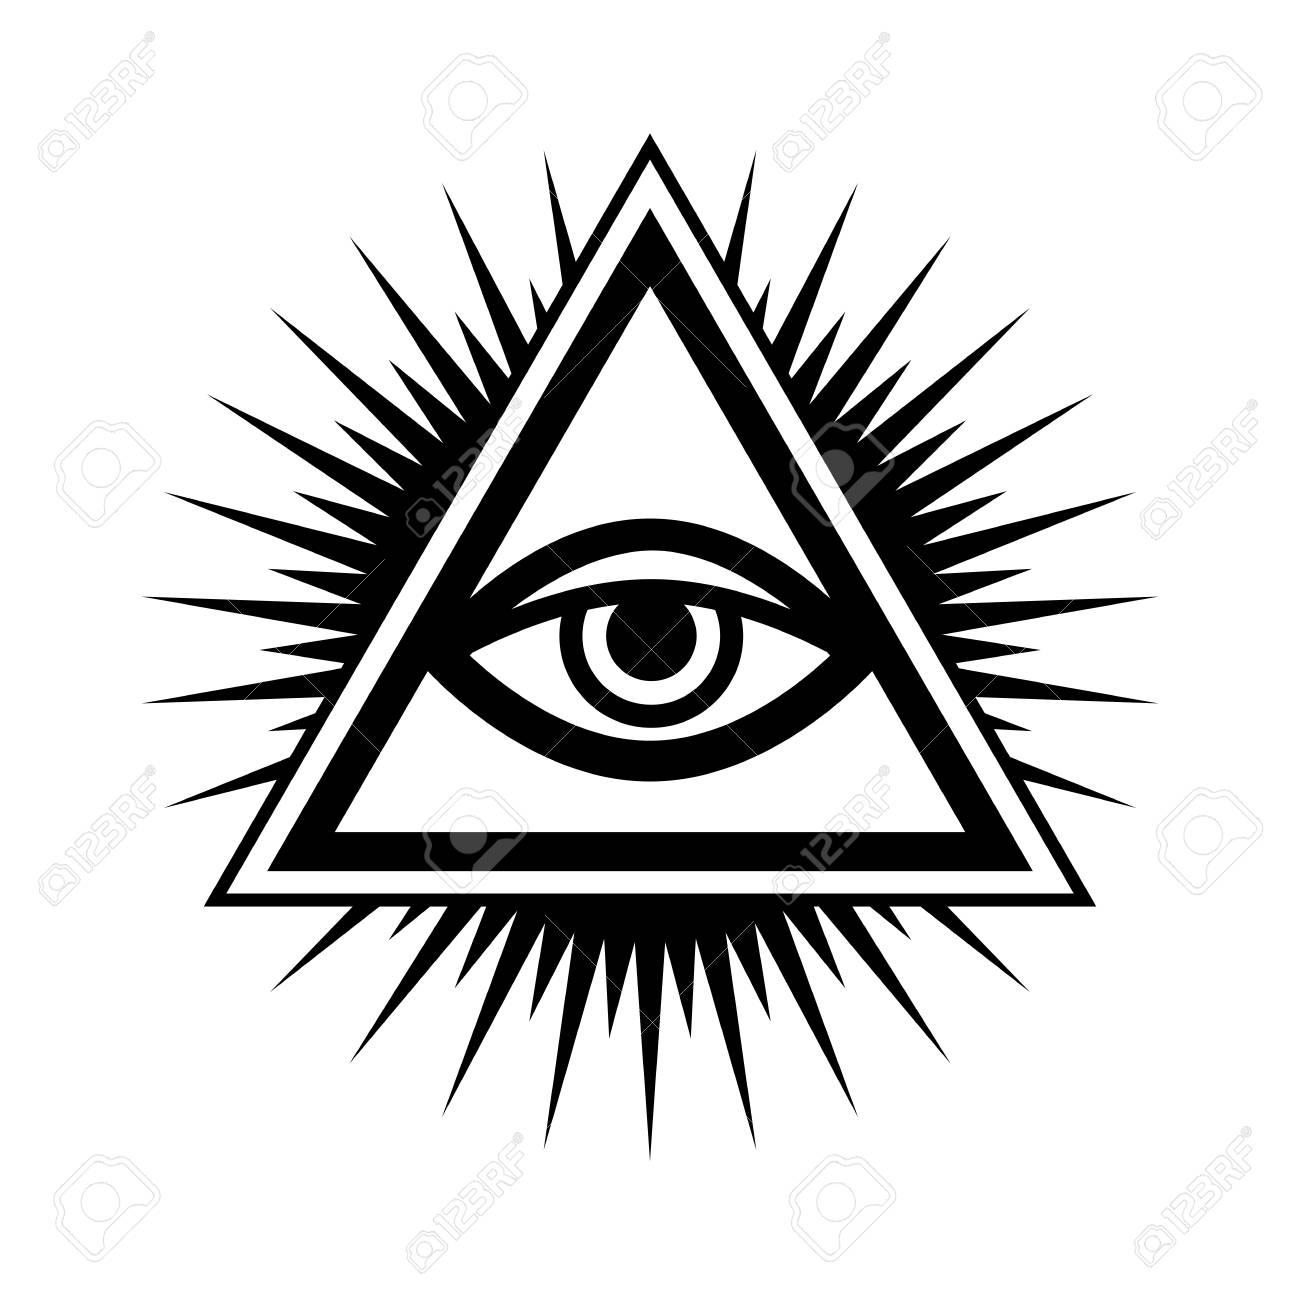 All seeing eye clipart 4 » Clipart Station.